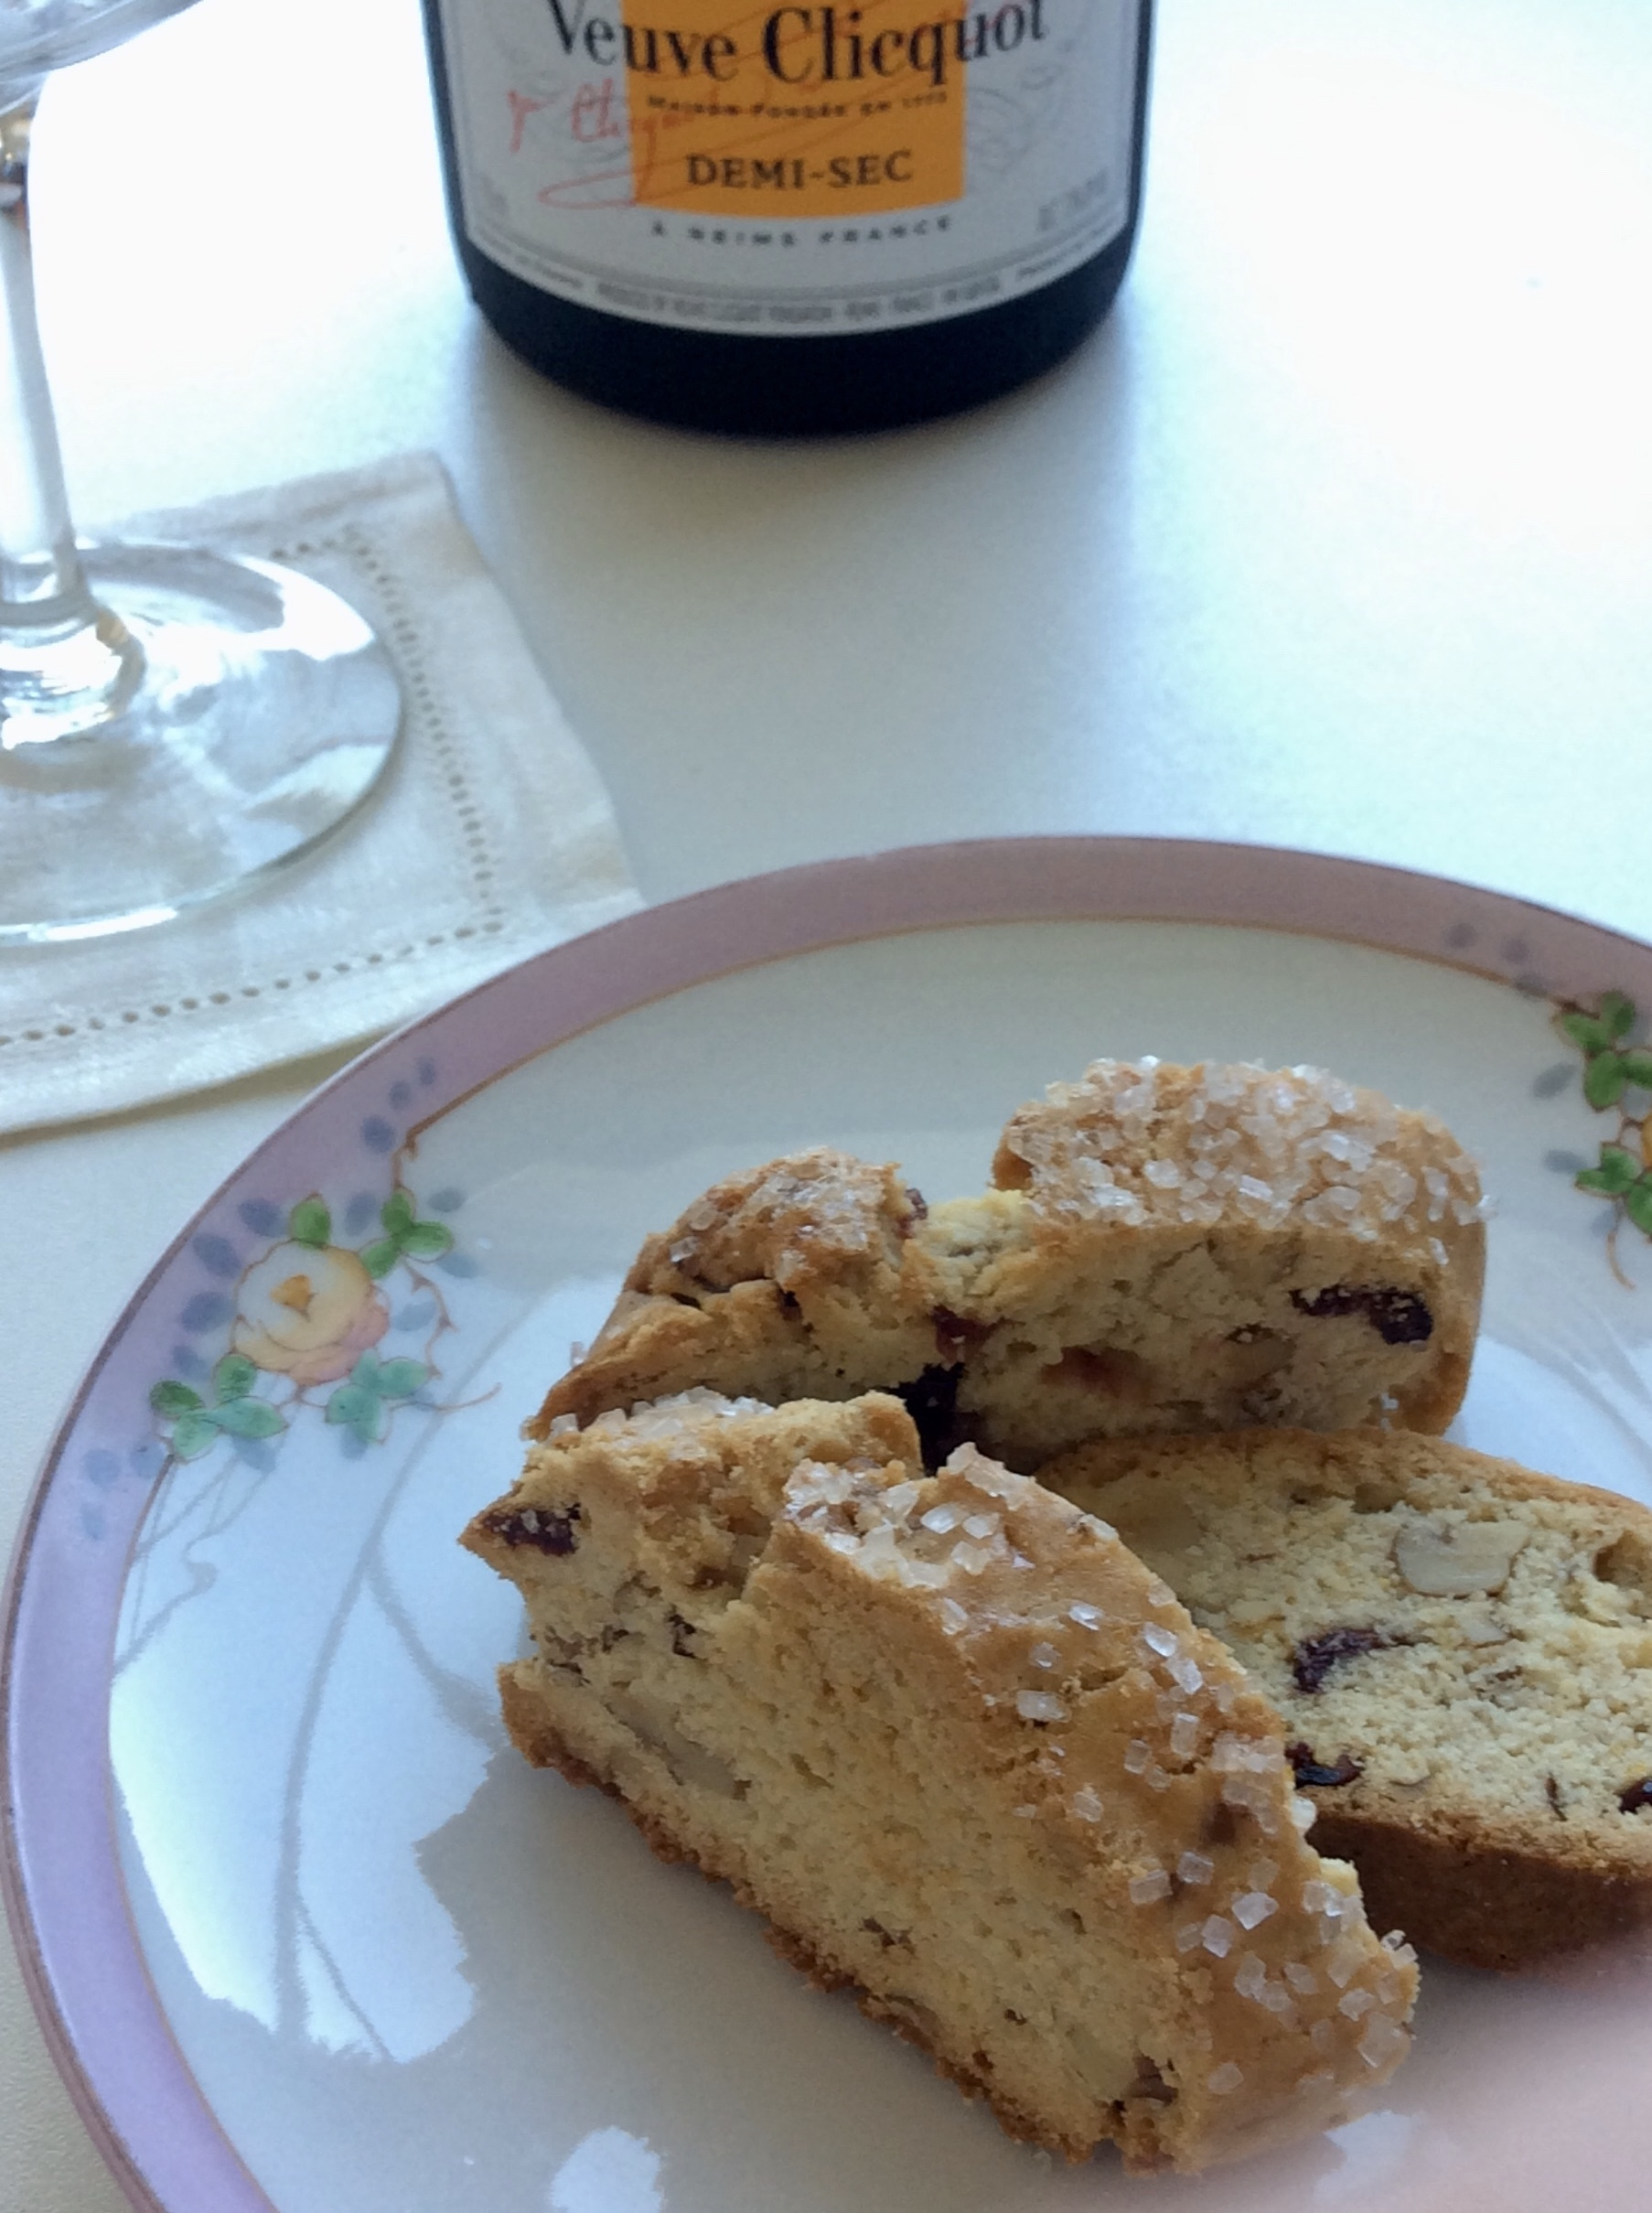 Biscotti are delicious with coffee, tea and wine…bake and enjoy!